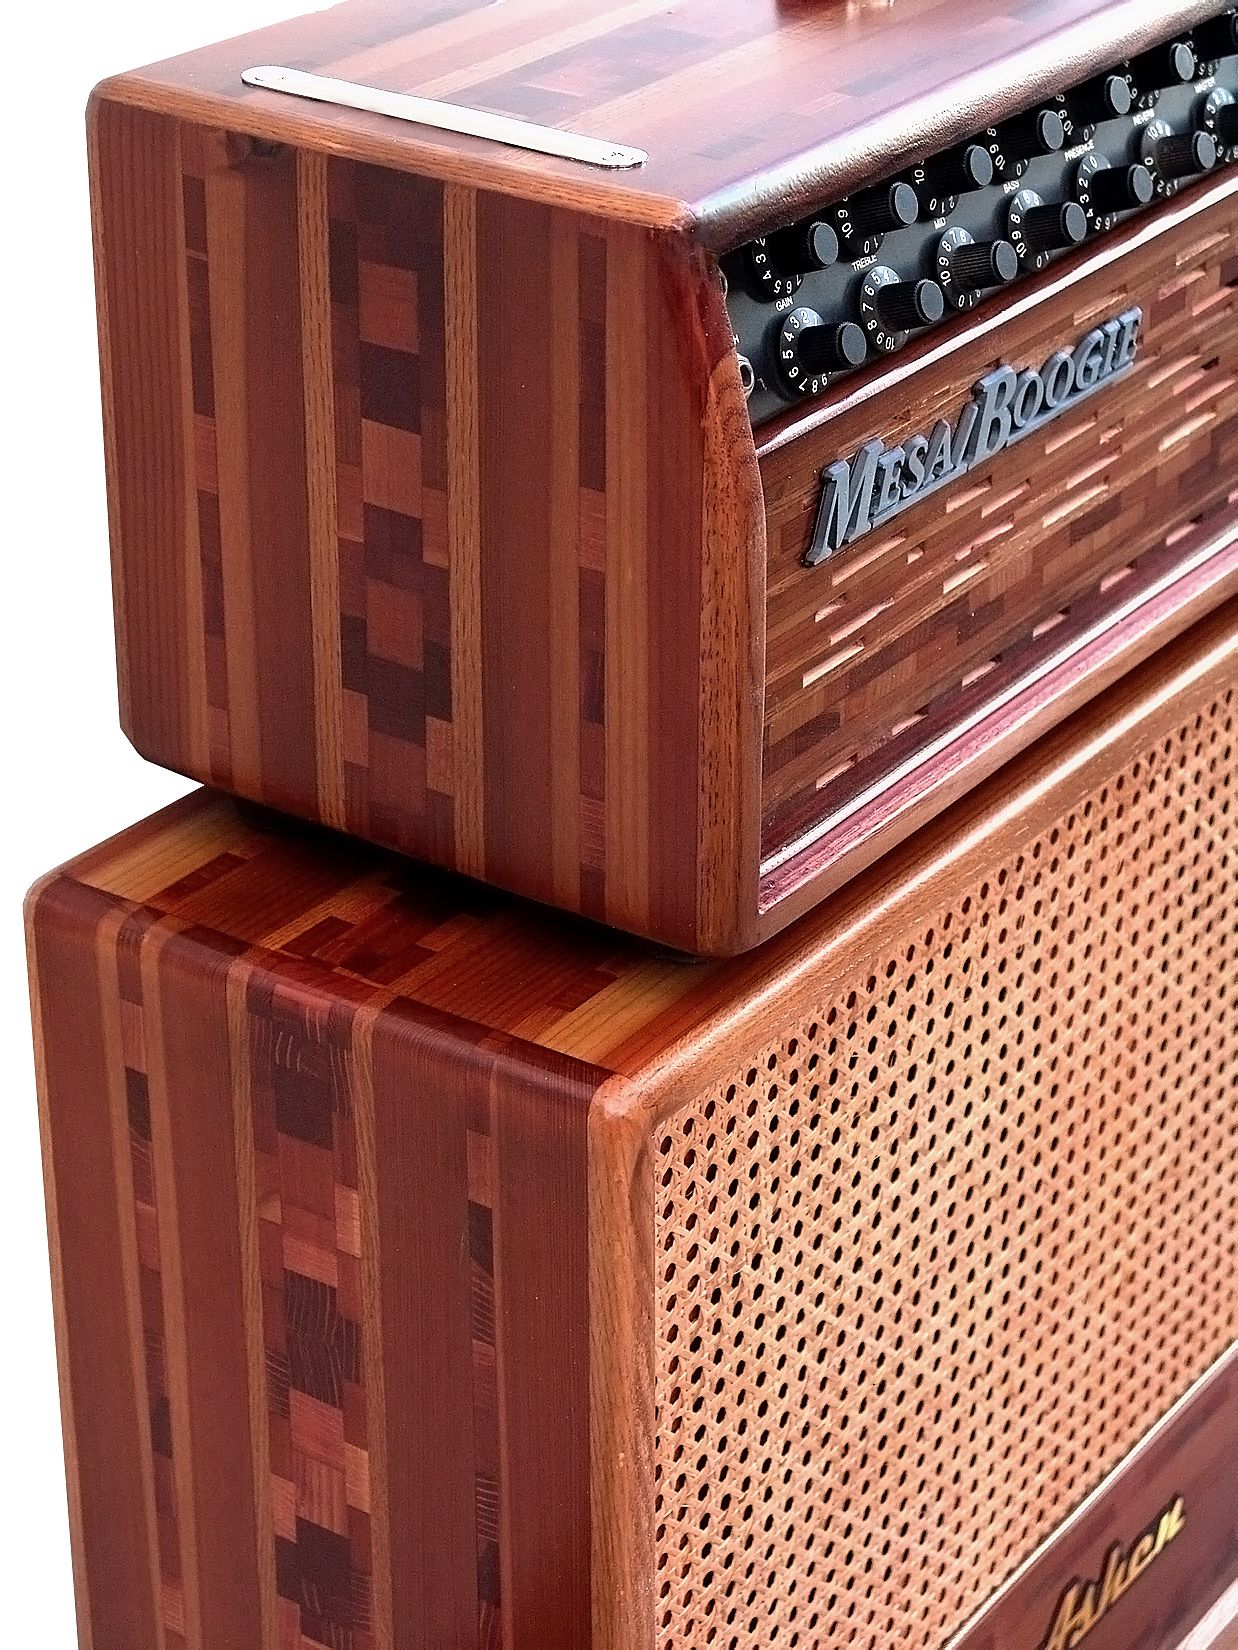 Mesa Boogie Dc 10 Customized By Ashen Amps With Matching Ashen 212 Cabinet Diy Guitar Amp Boutique Guitar Guitar Cabinet